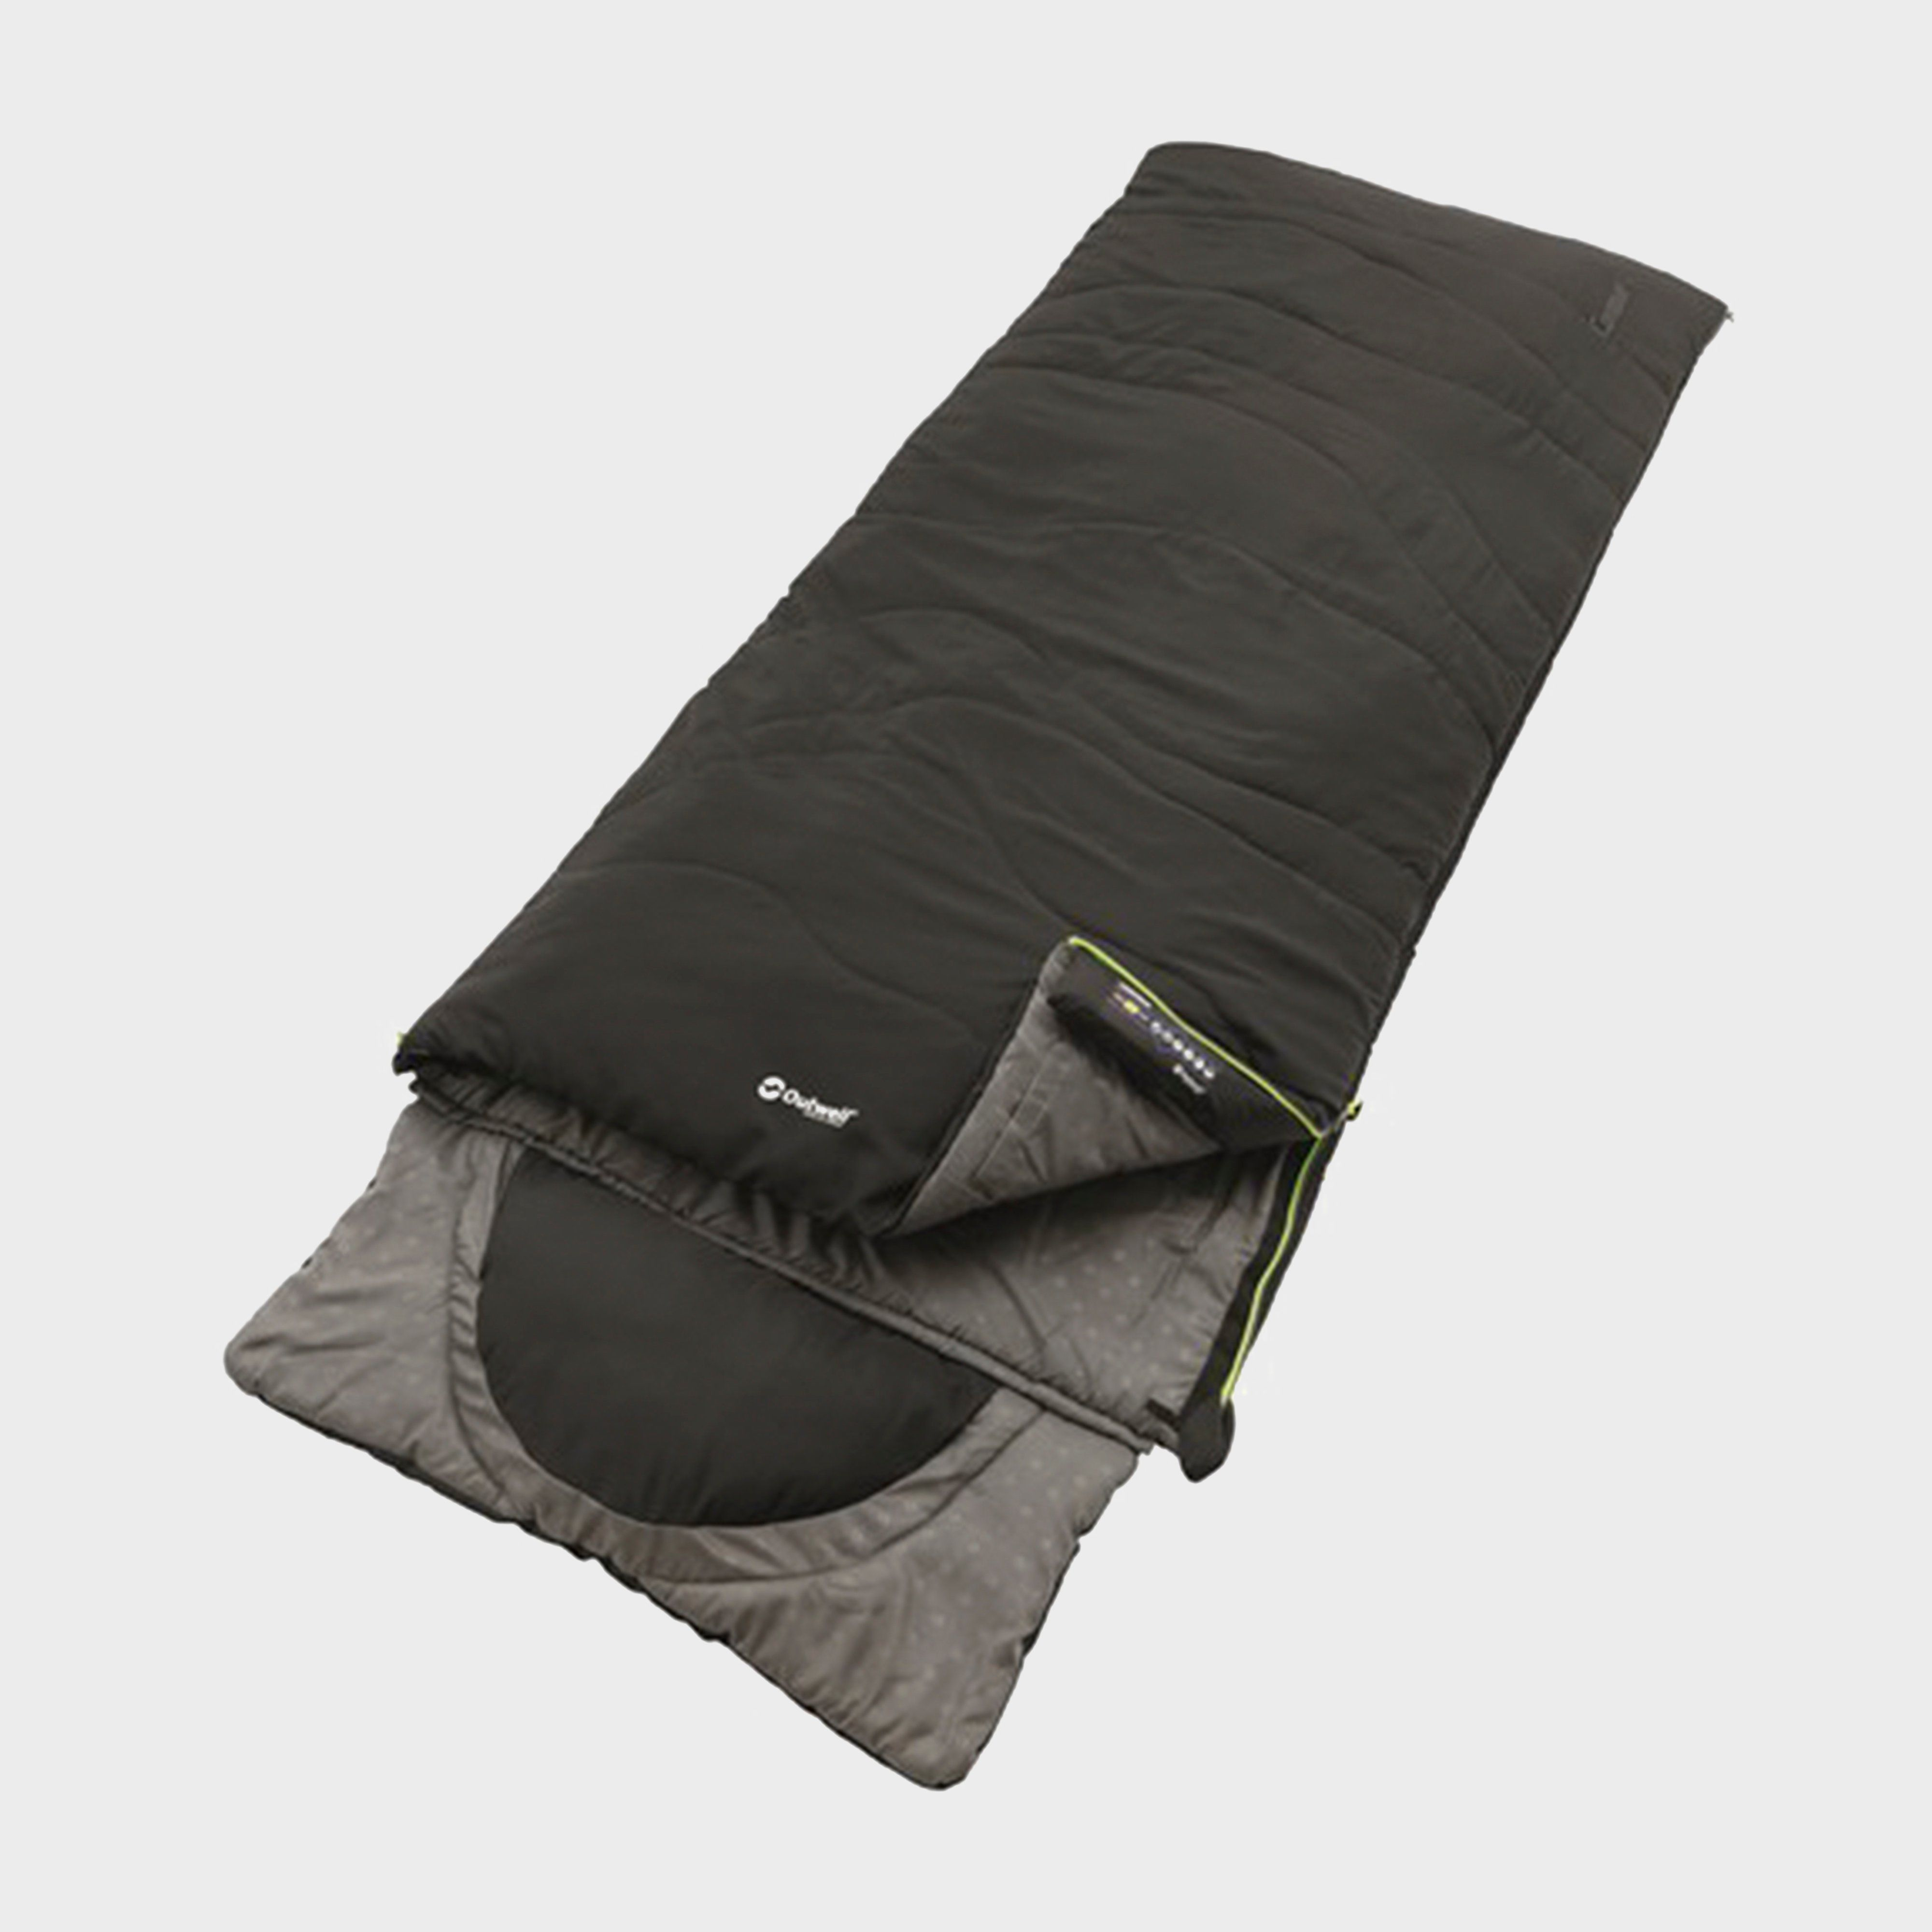 OUTWELL Contour Sleeping Bag